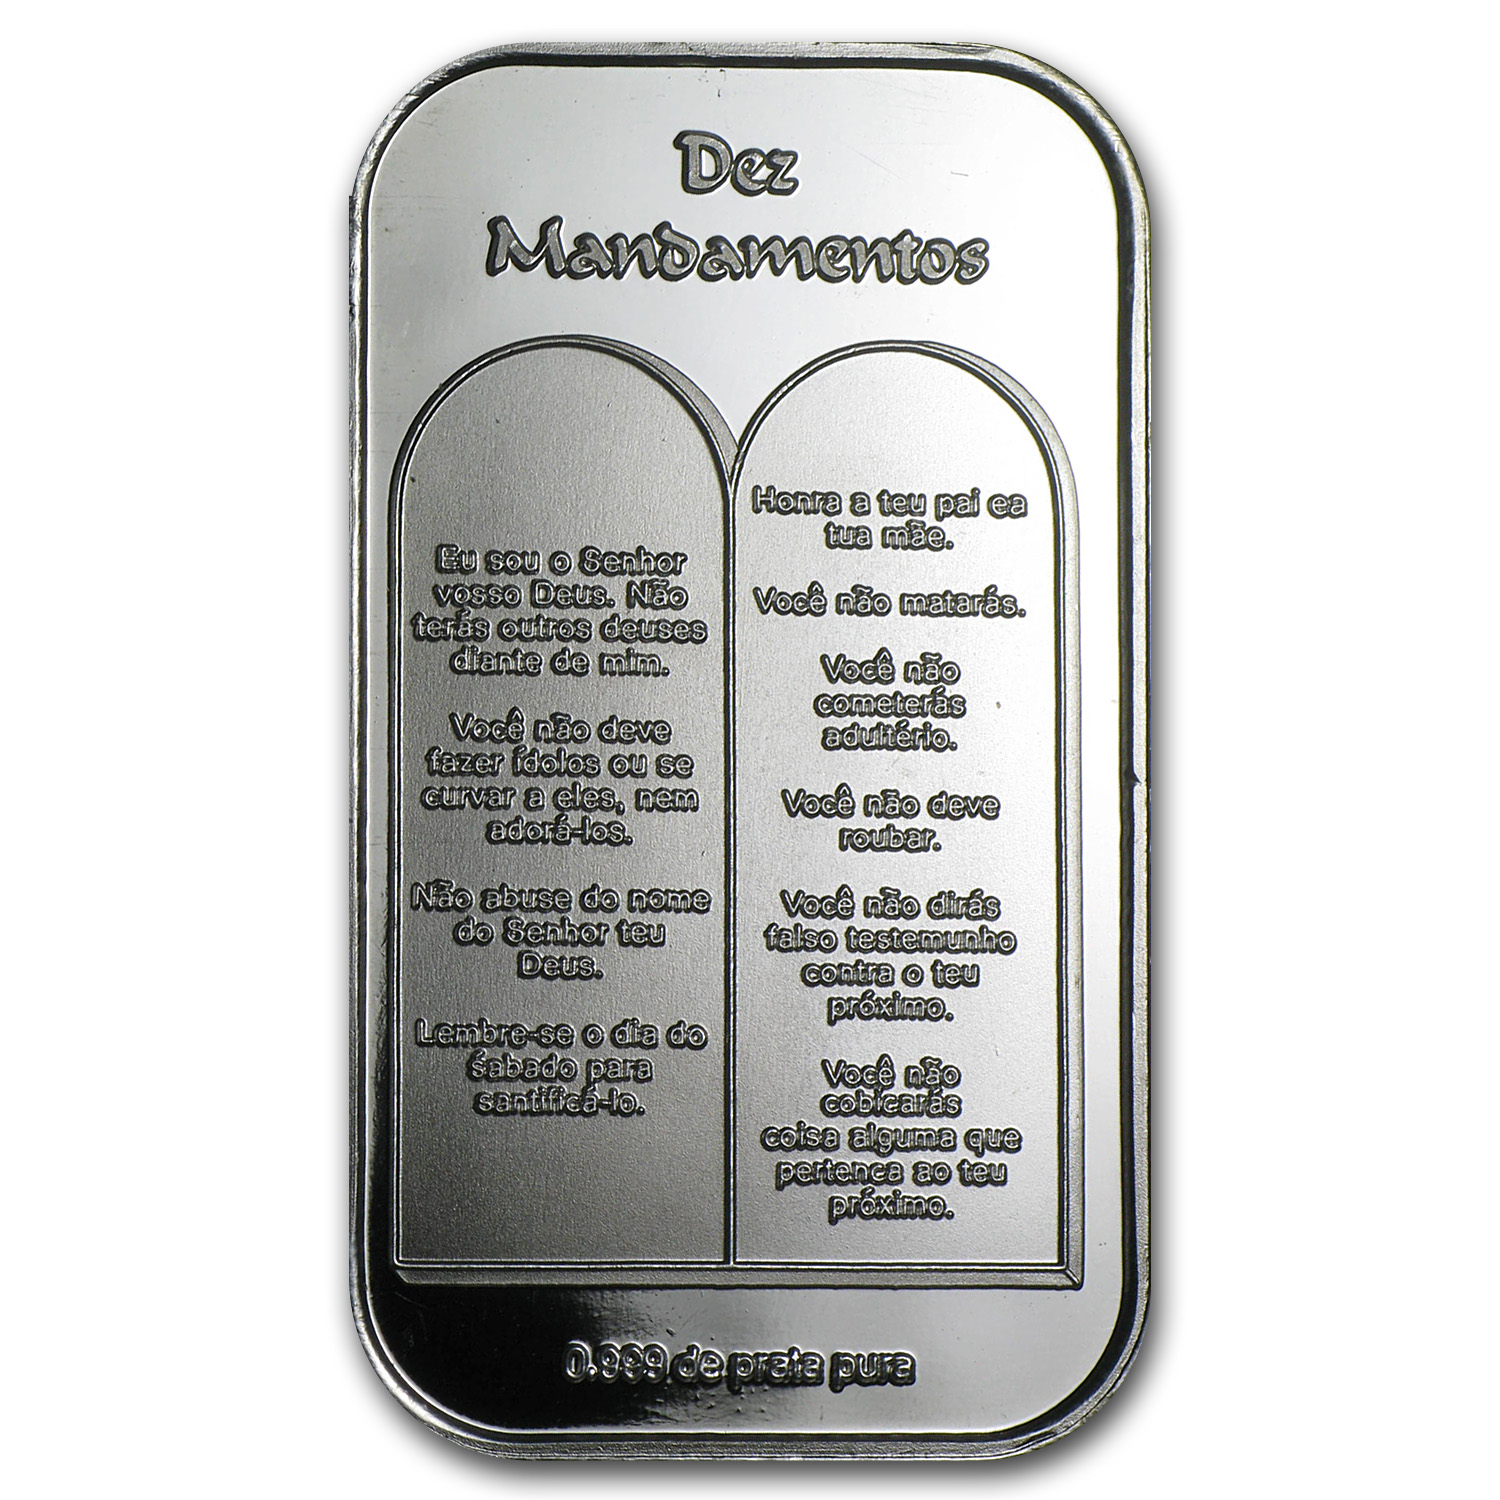 1 oz Silver Bar - Ten Commandments (Portuguese)